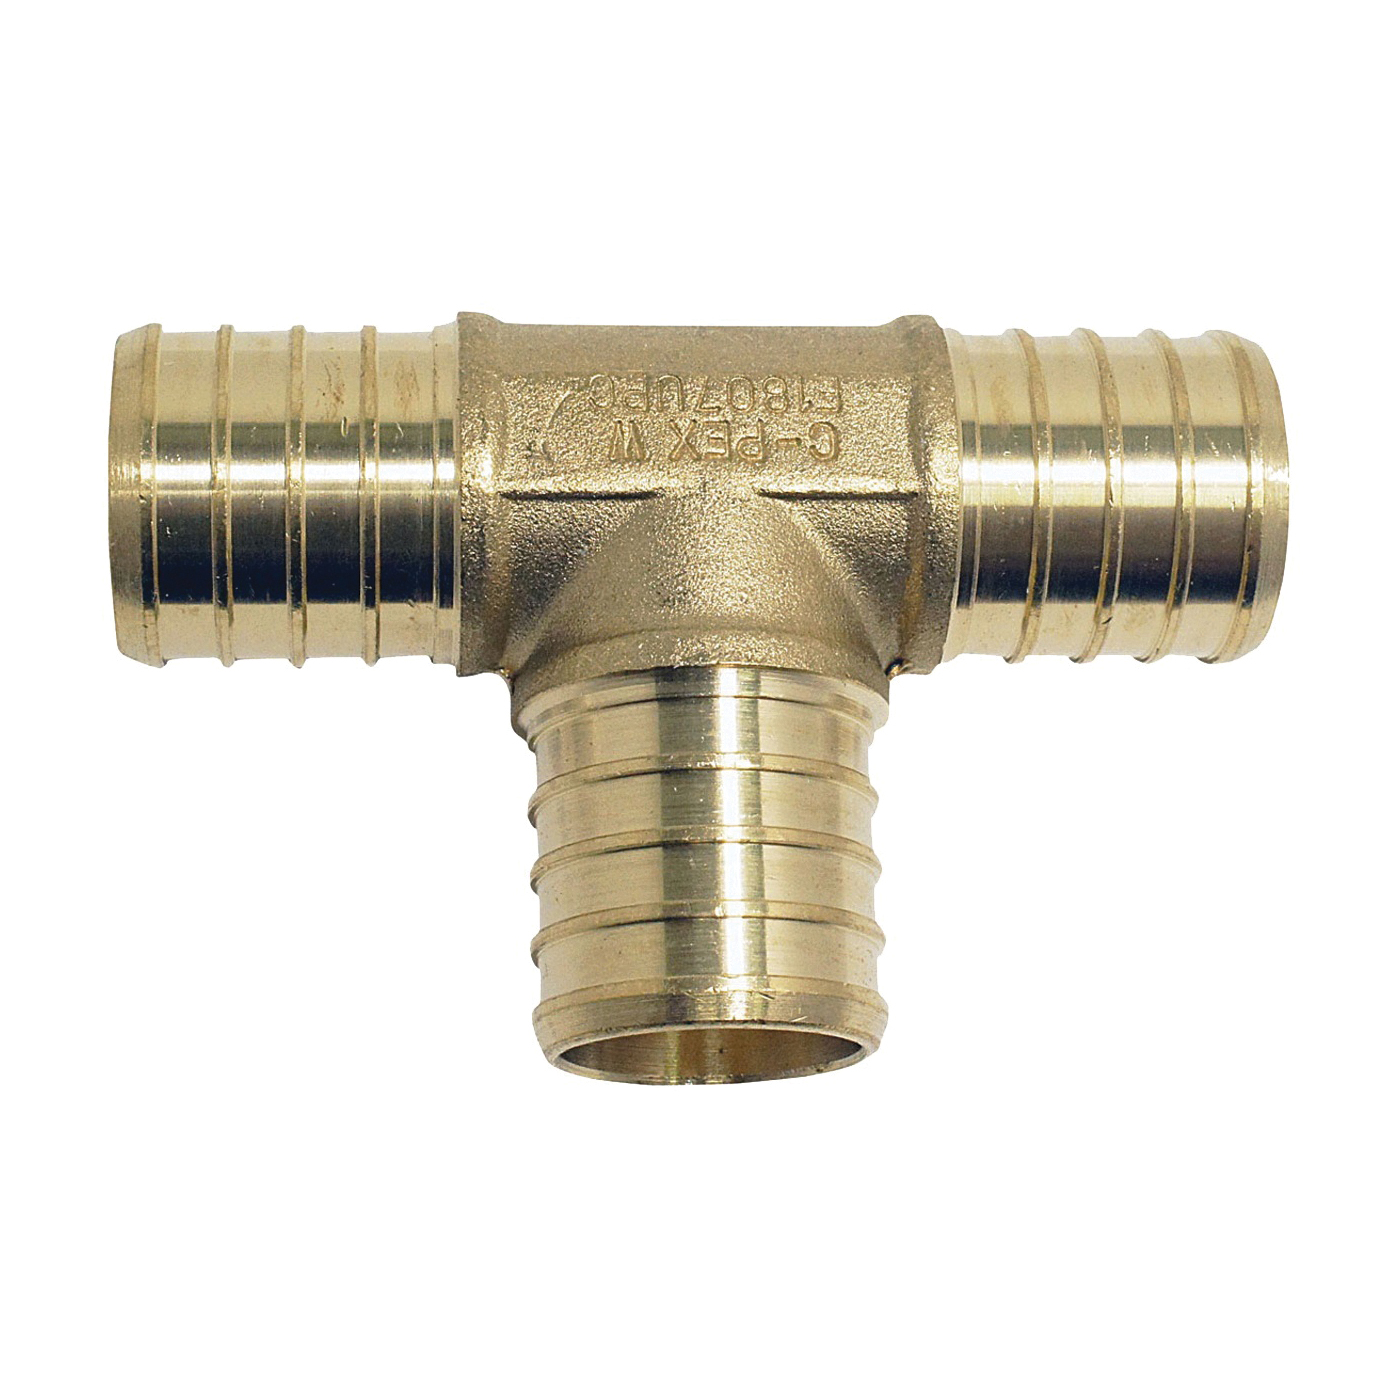 Picture of Apollo ApolloPEX APXT3410PK Pipe Tee, 3/4 in Barb Run Connection, 3/4 in Barb Branch Connection